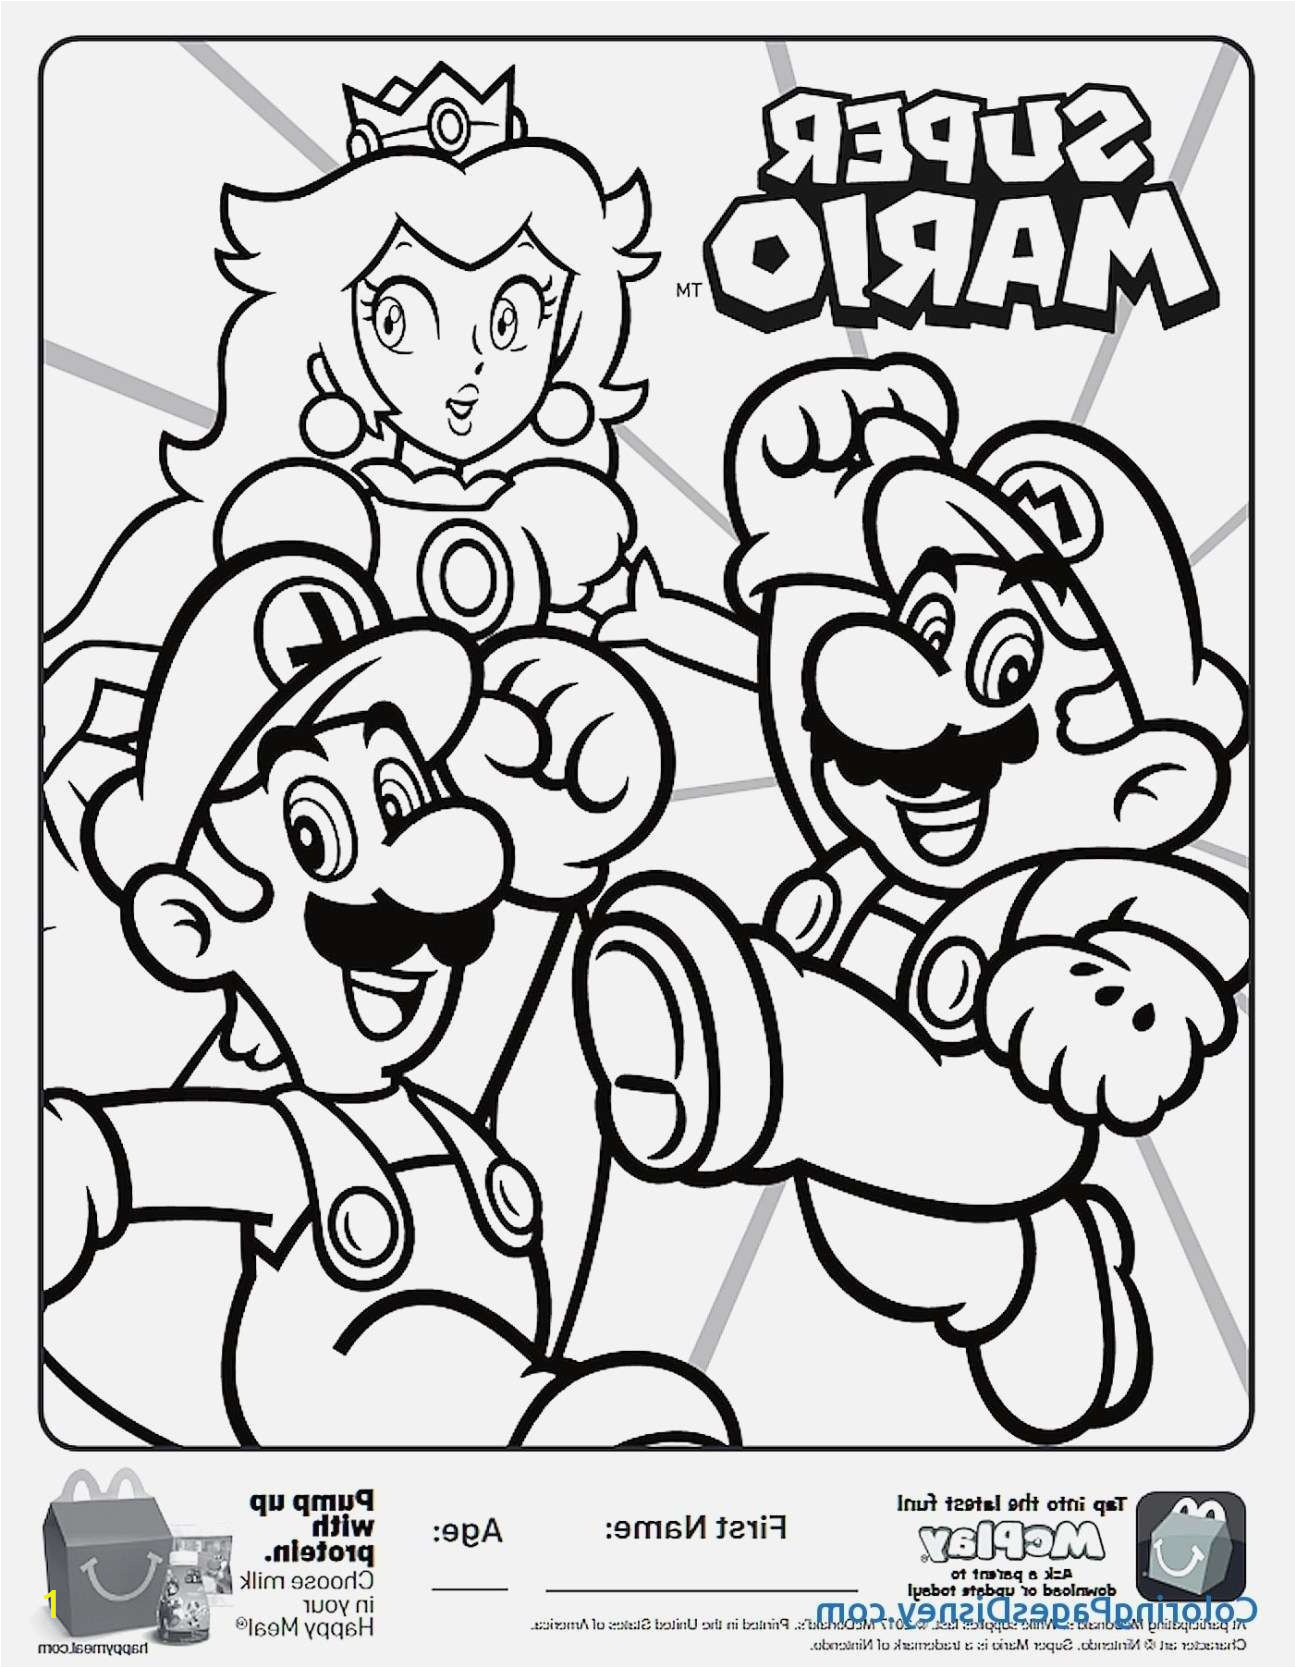 minnie mouse clubhouse coloring page awesome gallery 15 new christmas coloring pages for children s church karen of minnie mouse clubhouse coloring page